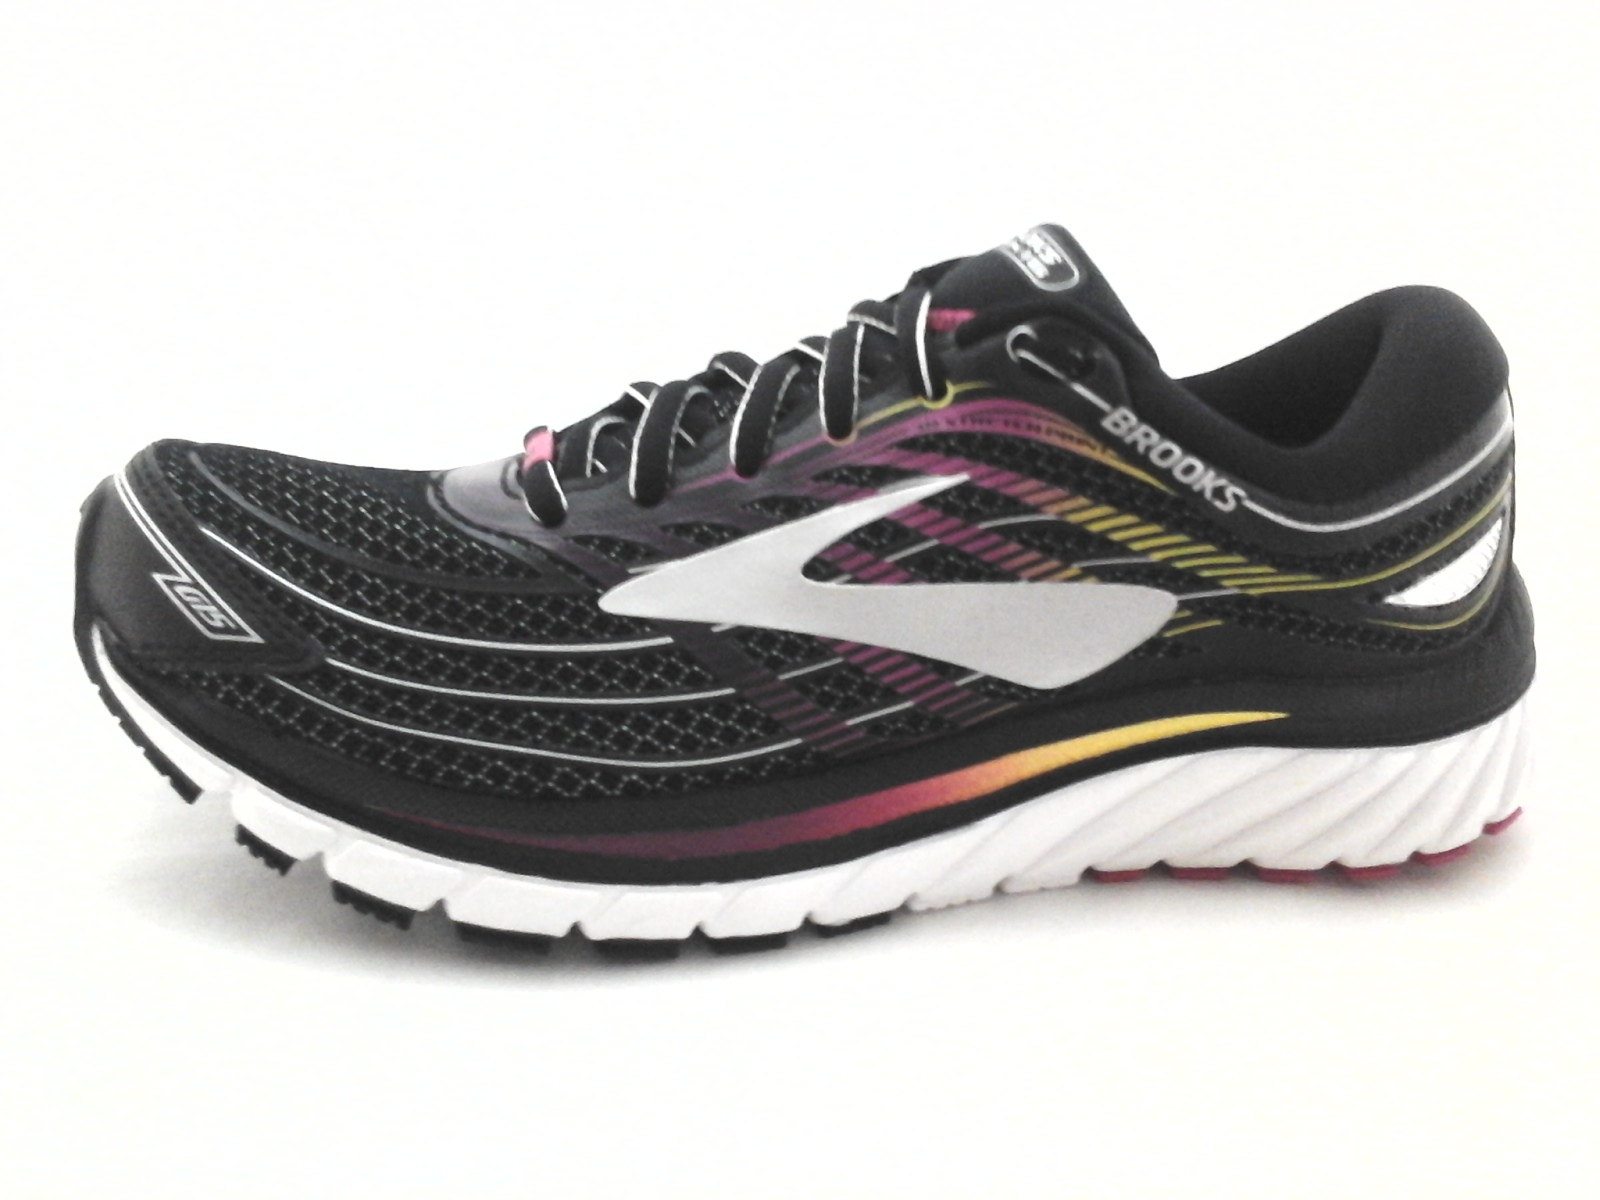 0f669749c9377 BROOKS Glycerin 15 Shoes Black Multi Running Sneakers DNA Womens US 6  36.5   150